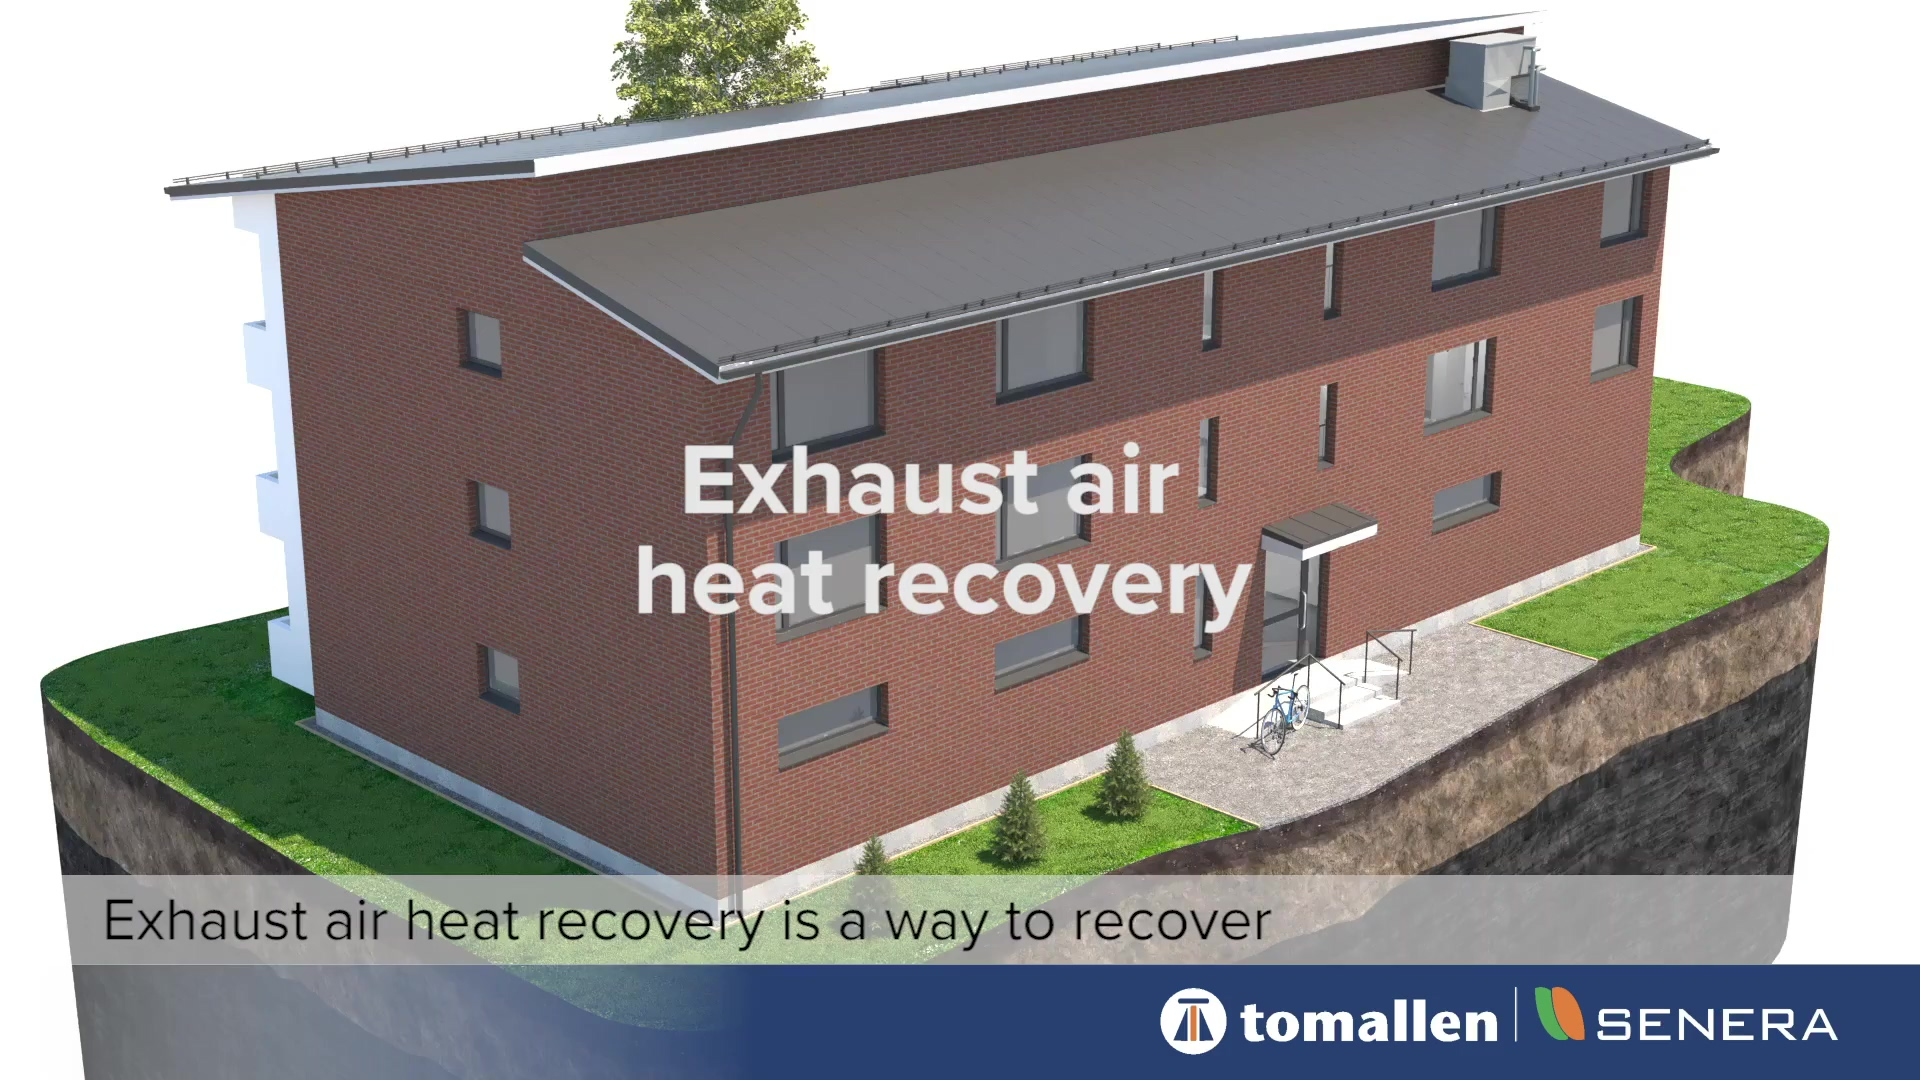 Exhaust air heat recovery